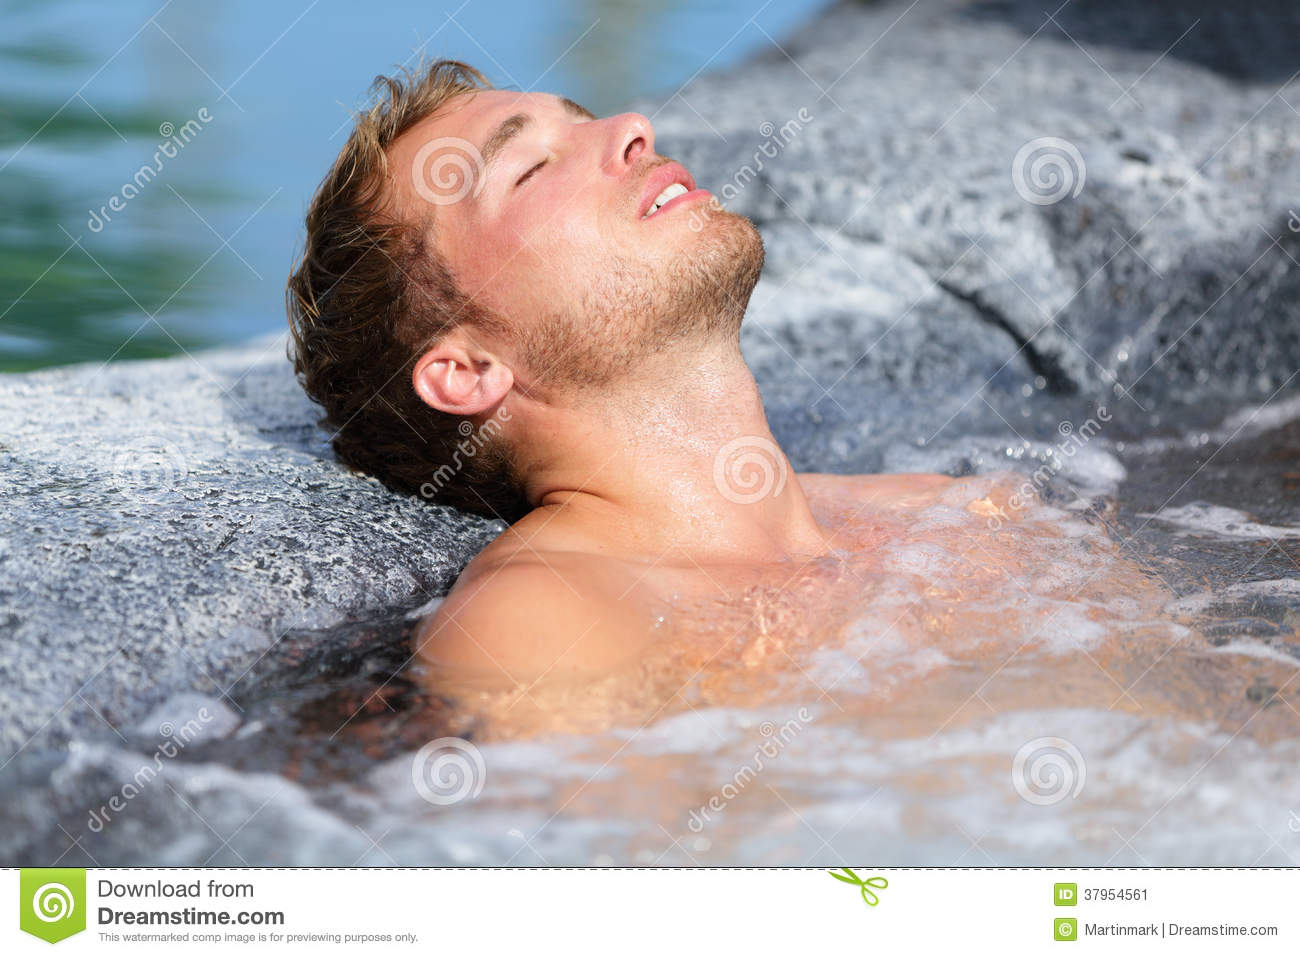 Wellness Spa - Man Relaxing In Hot Tub Whirlpool Stock Image - Image ...: www.dreamstime.com/stock-image-wellness-spa-man-relaxing-hot-tub...